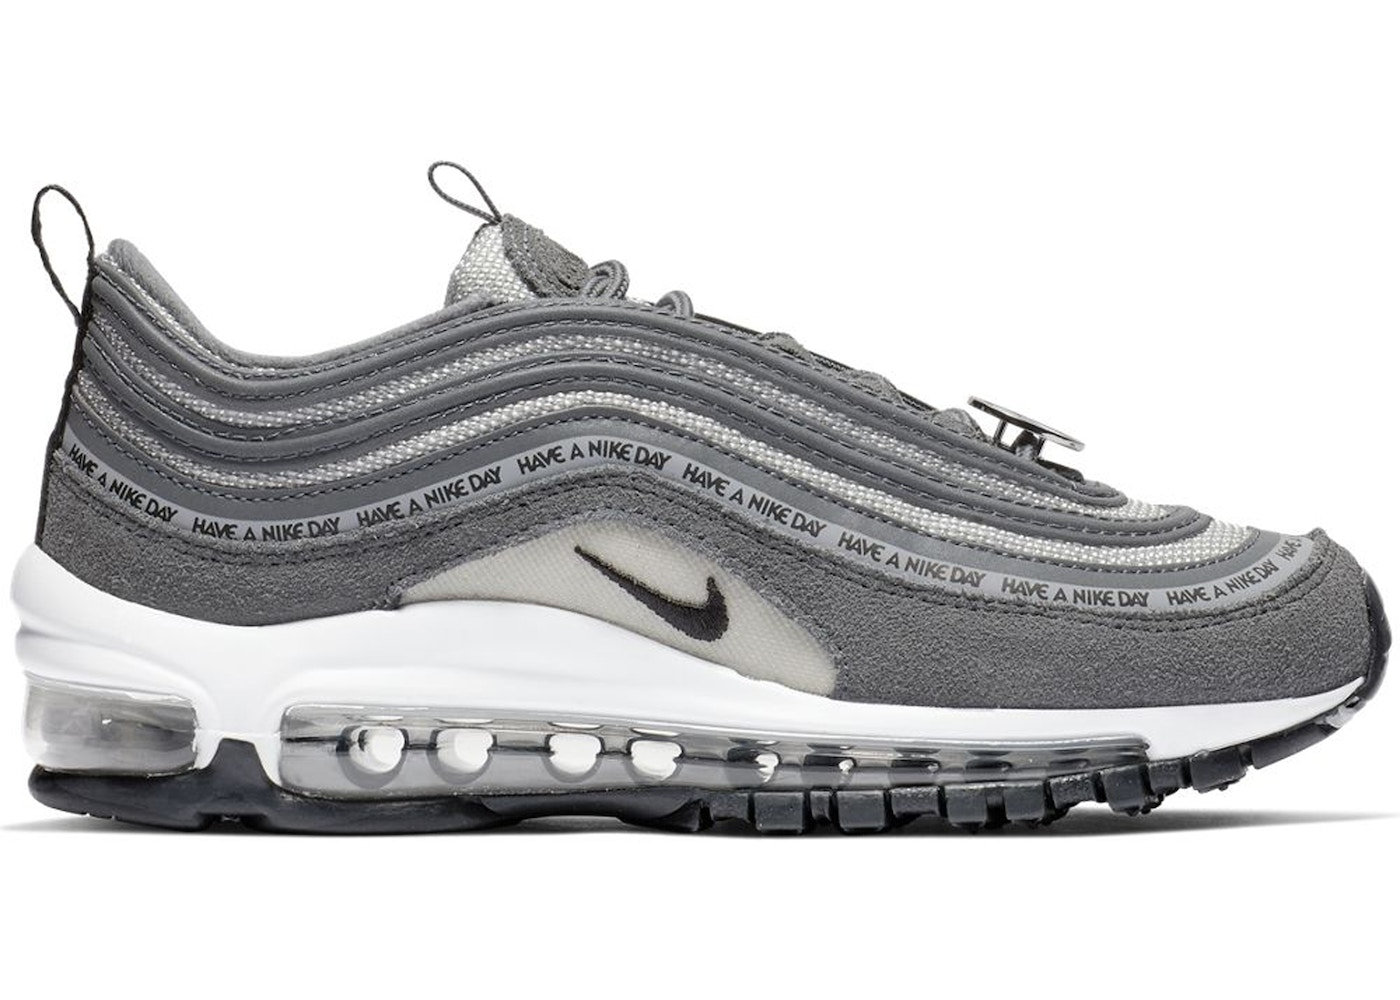 innovative design ec2ef b127f Air Max 97 Have a Nike Day Dark Grey (GS) - 923288-001